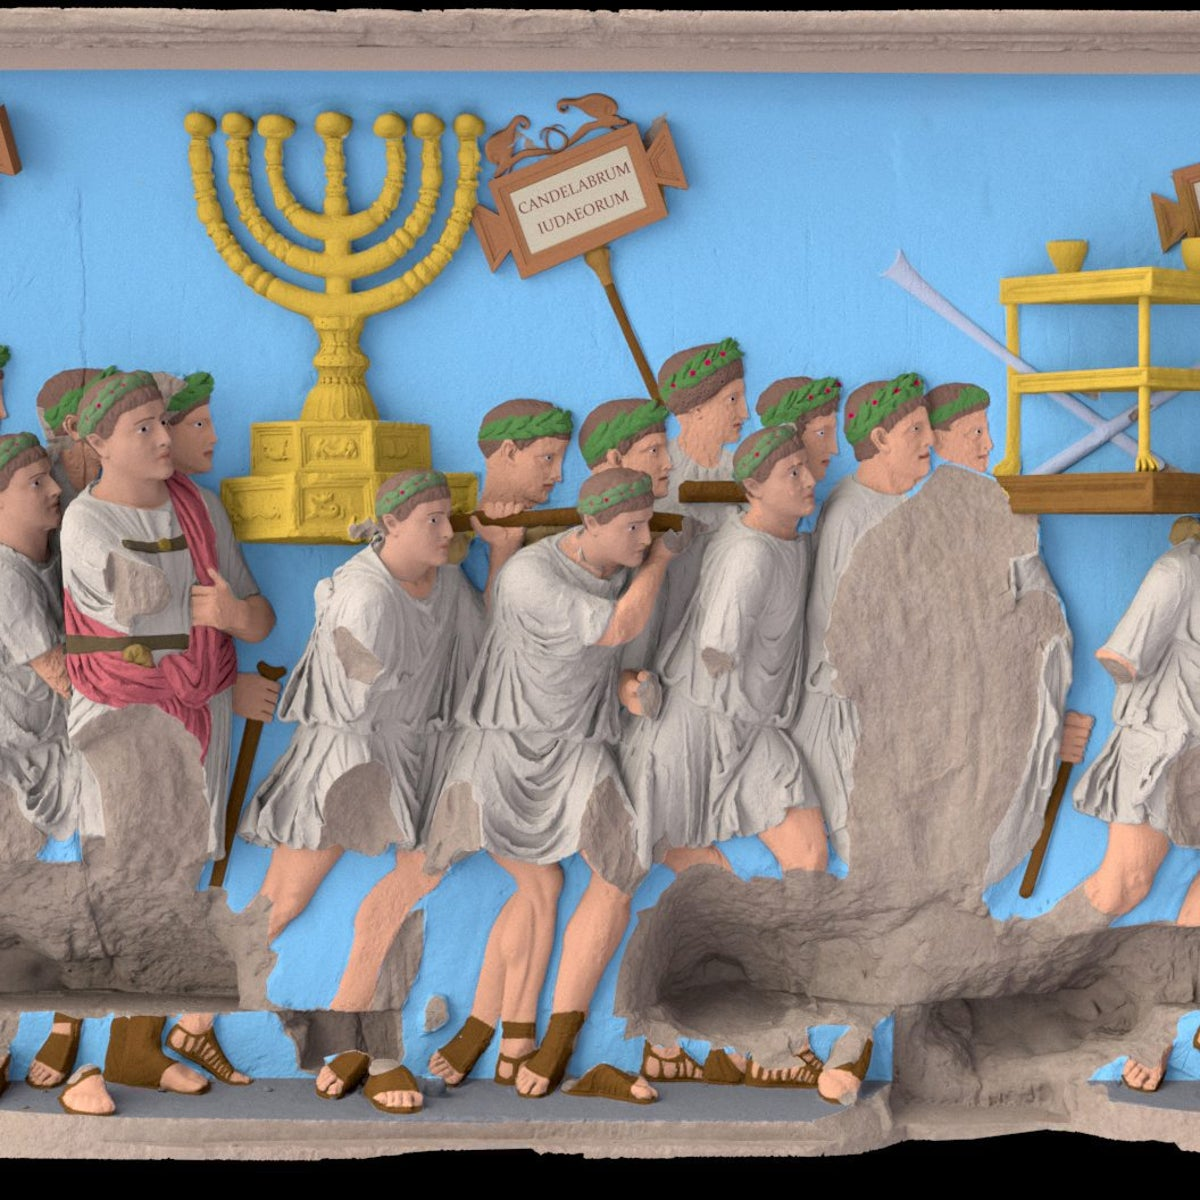 The digital reconstruction of the panel of Temple spoils, Arch of Titus